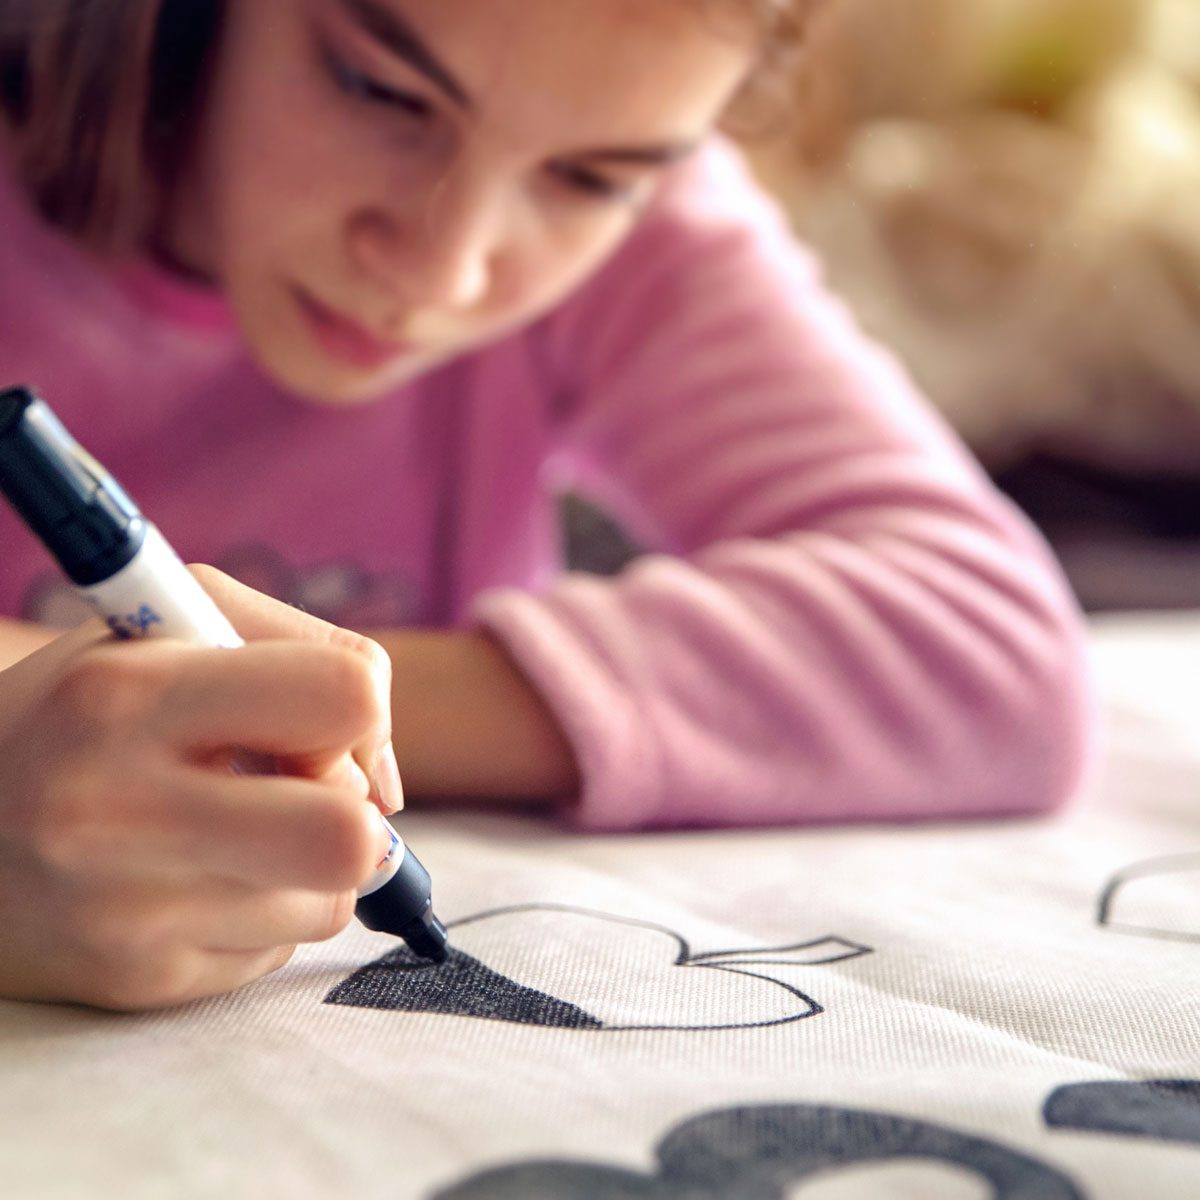 Girl drawing on fabric